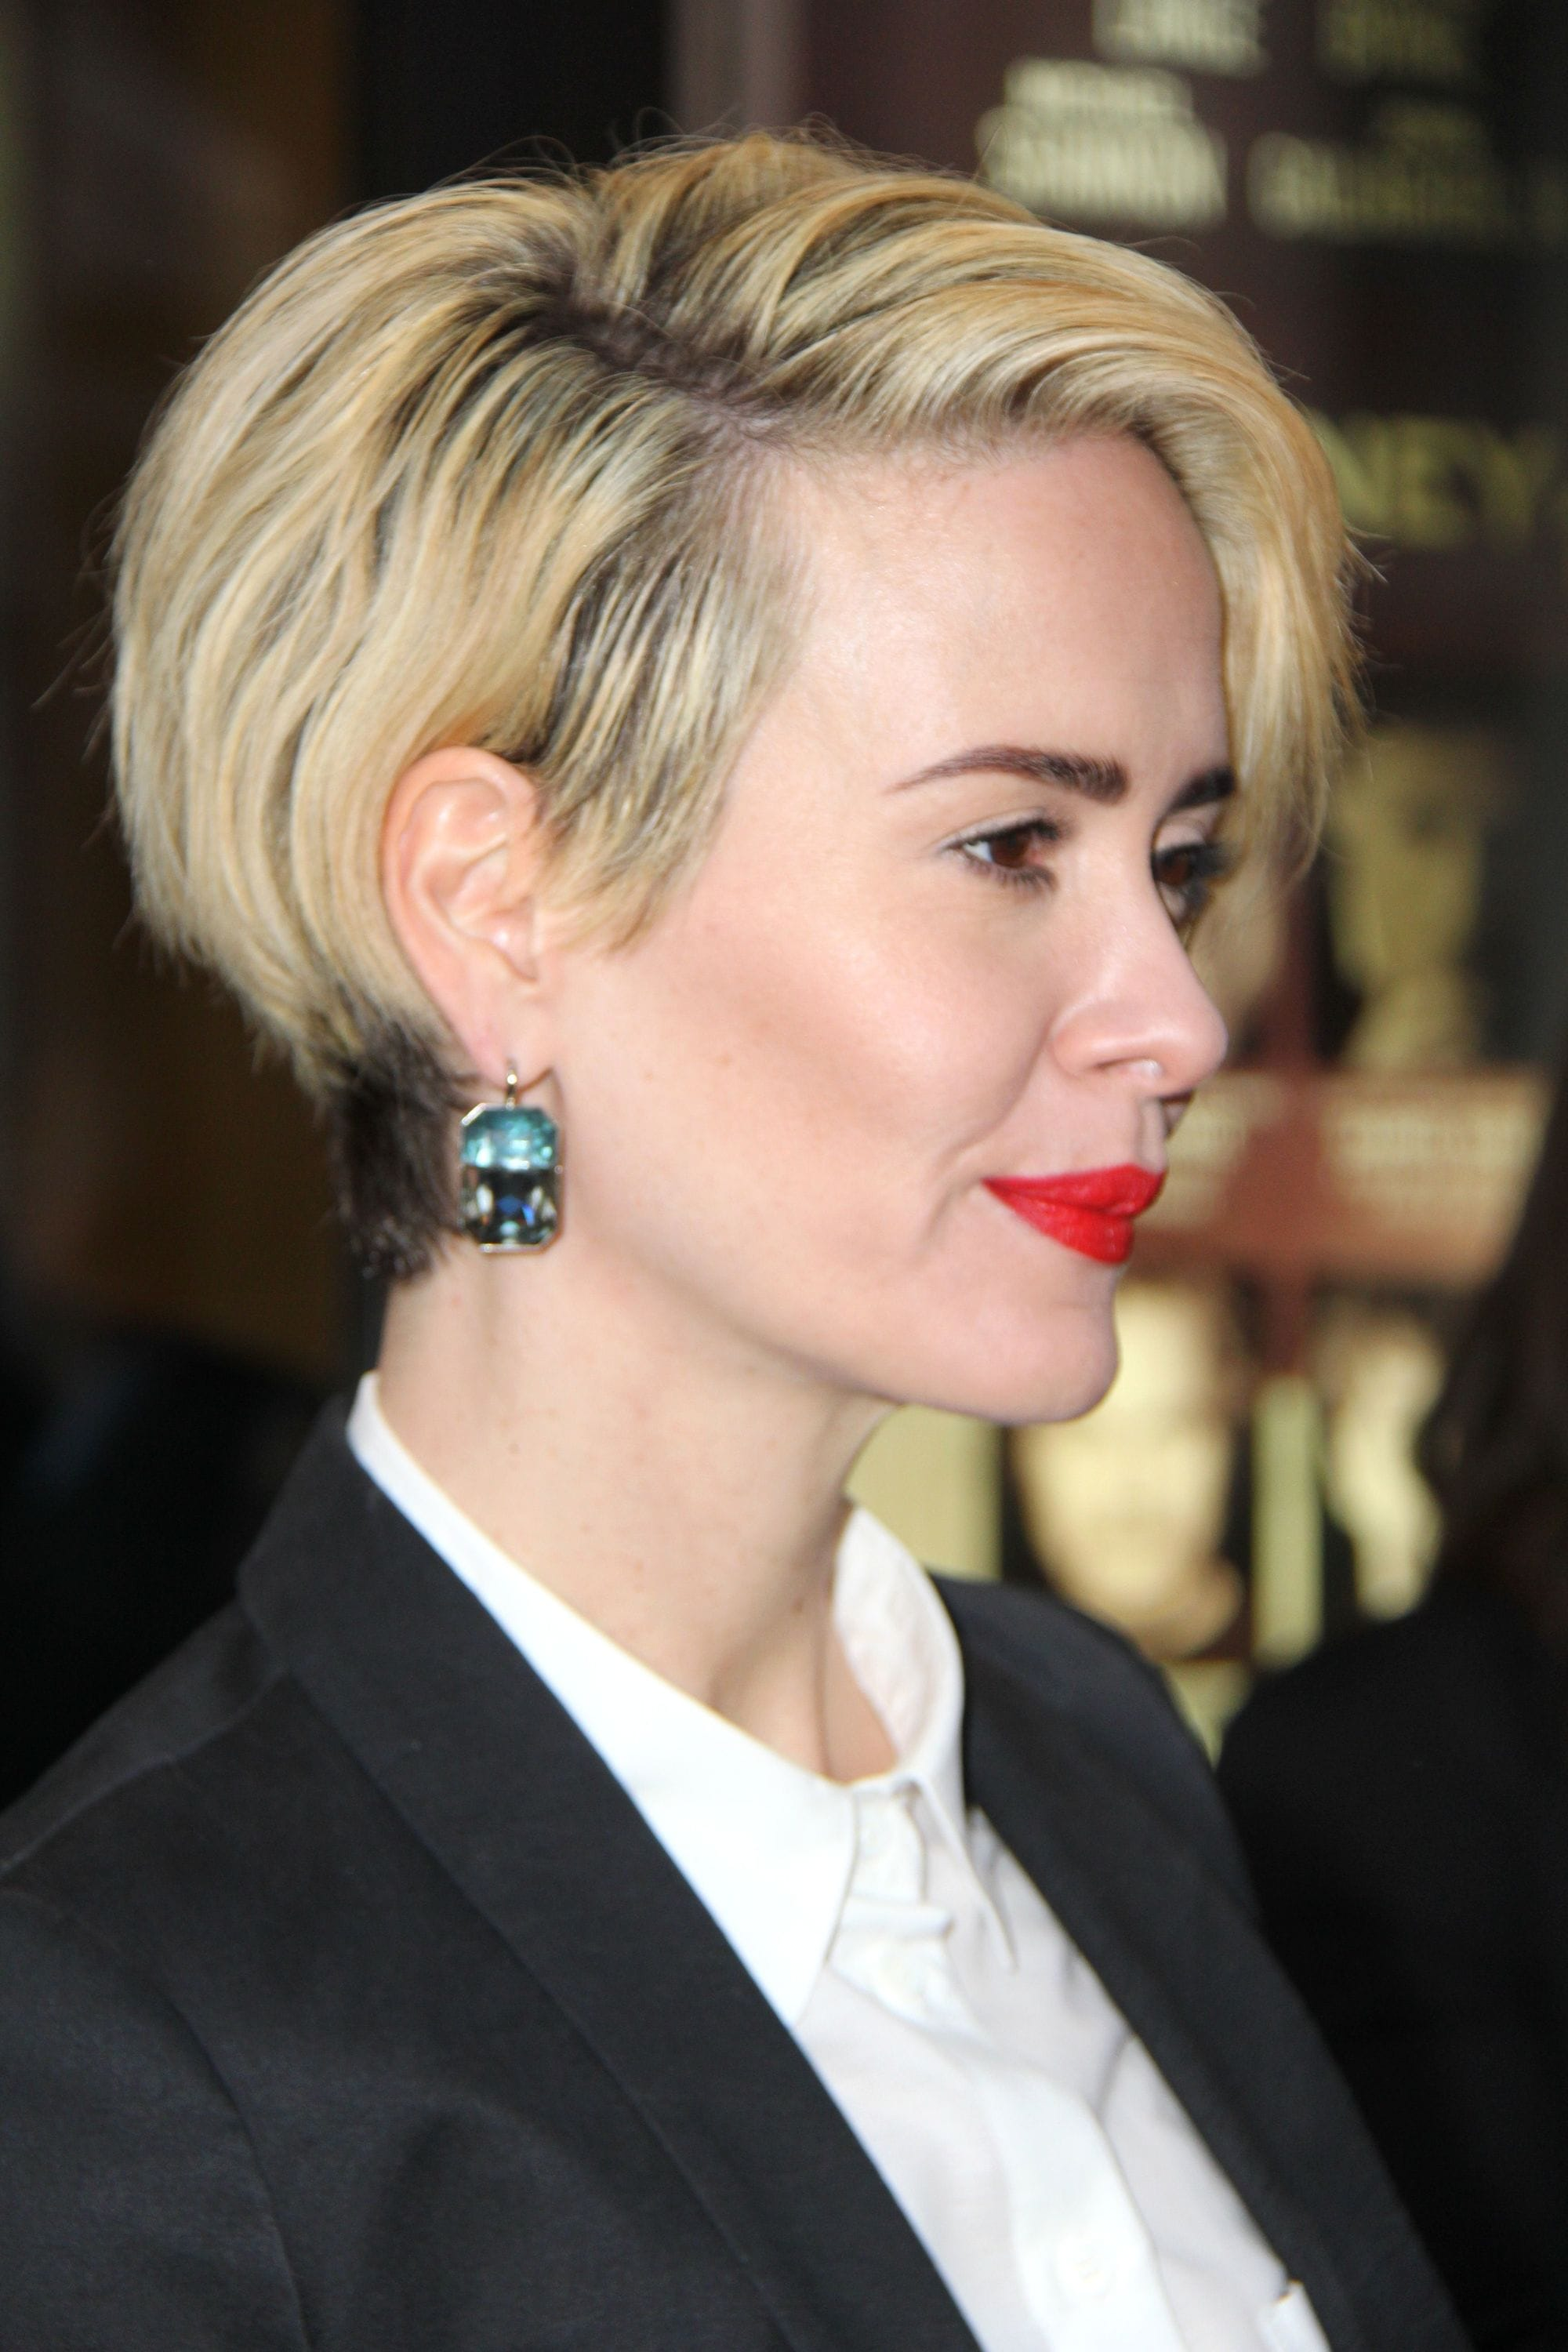 sarah paulson with short blonde hair styled in a choppy bob